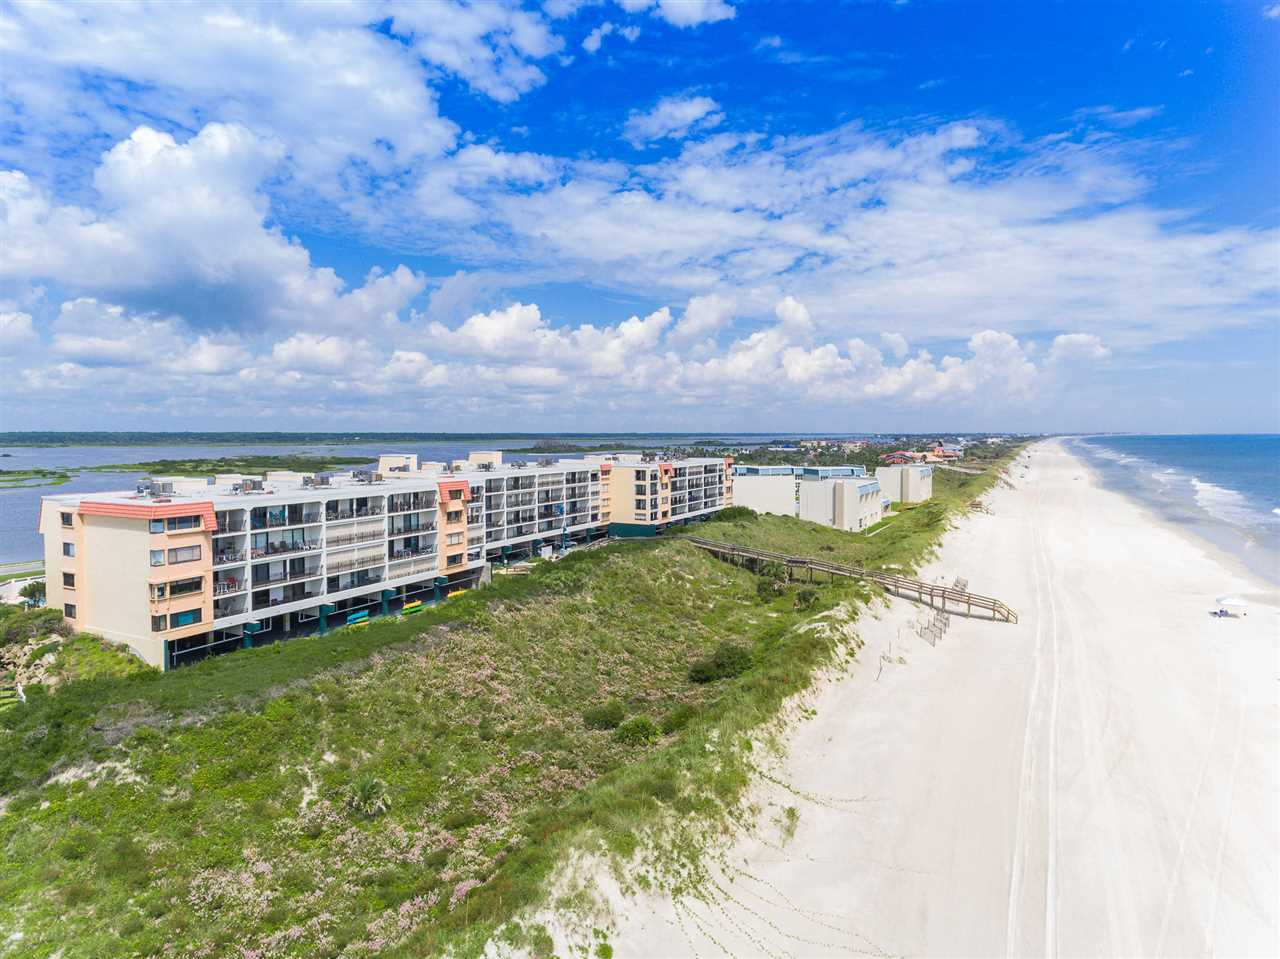 7780 A1A S #111 (2ND FLOOR), ST AUGUSTINE, FL 32080